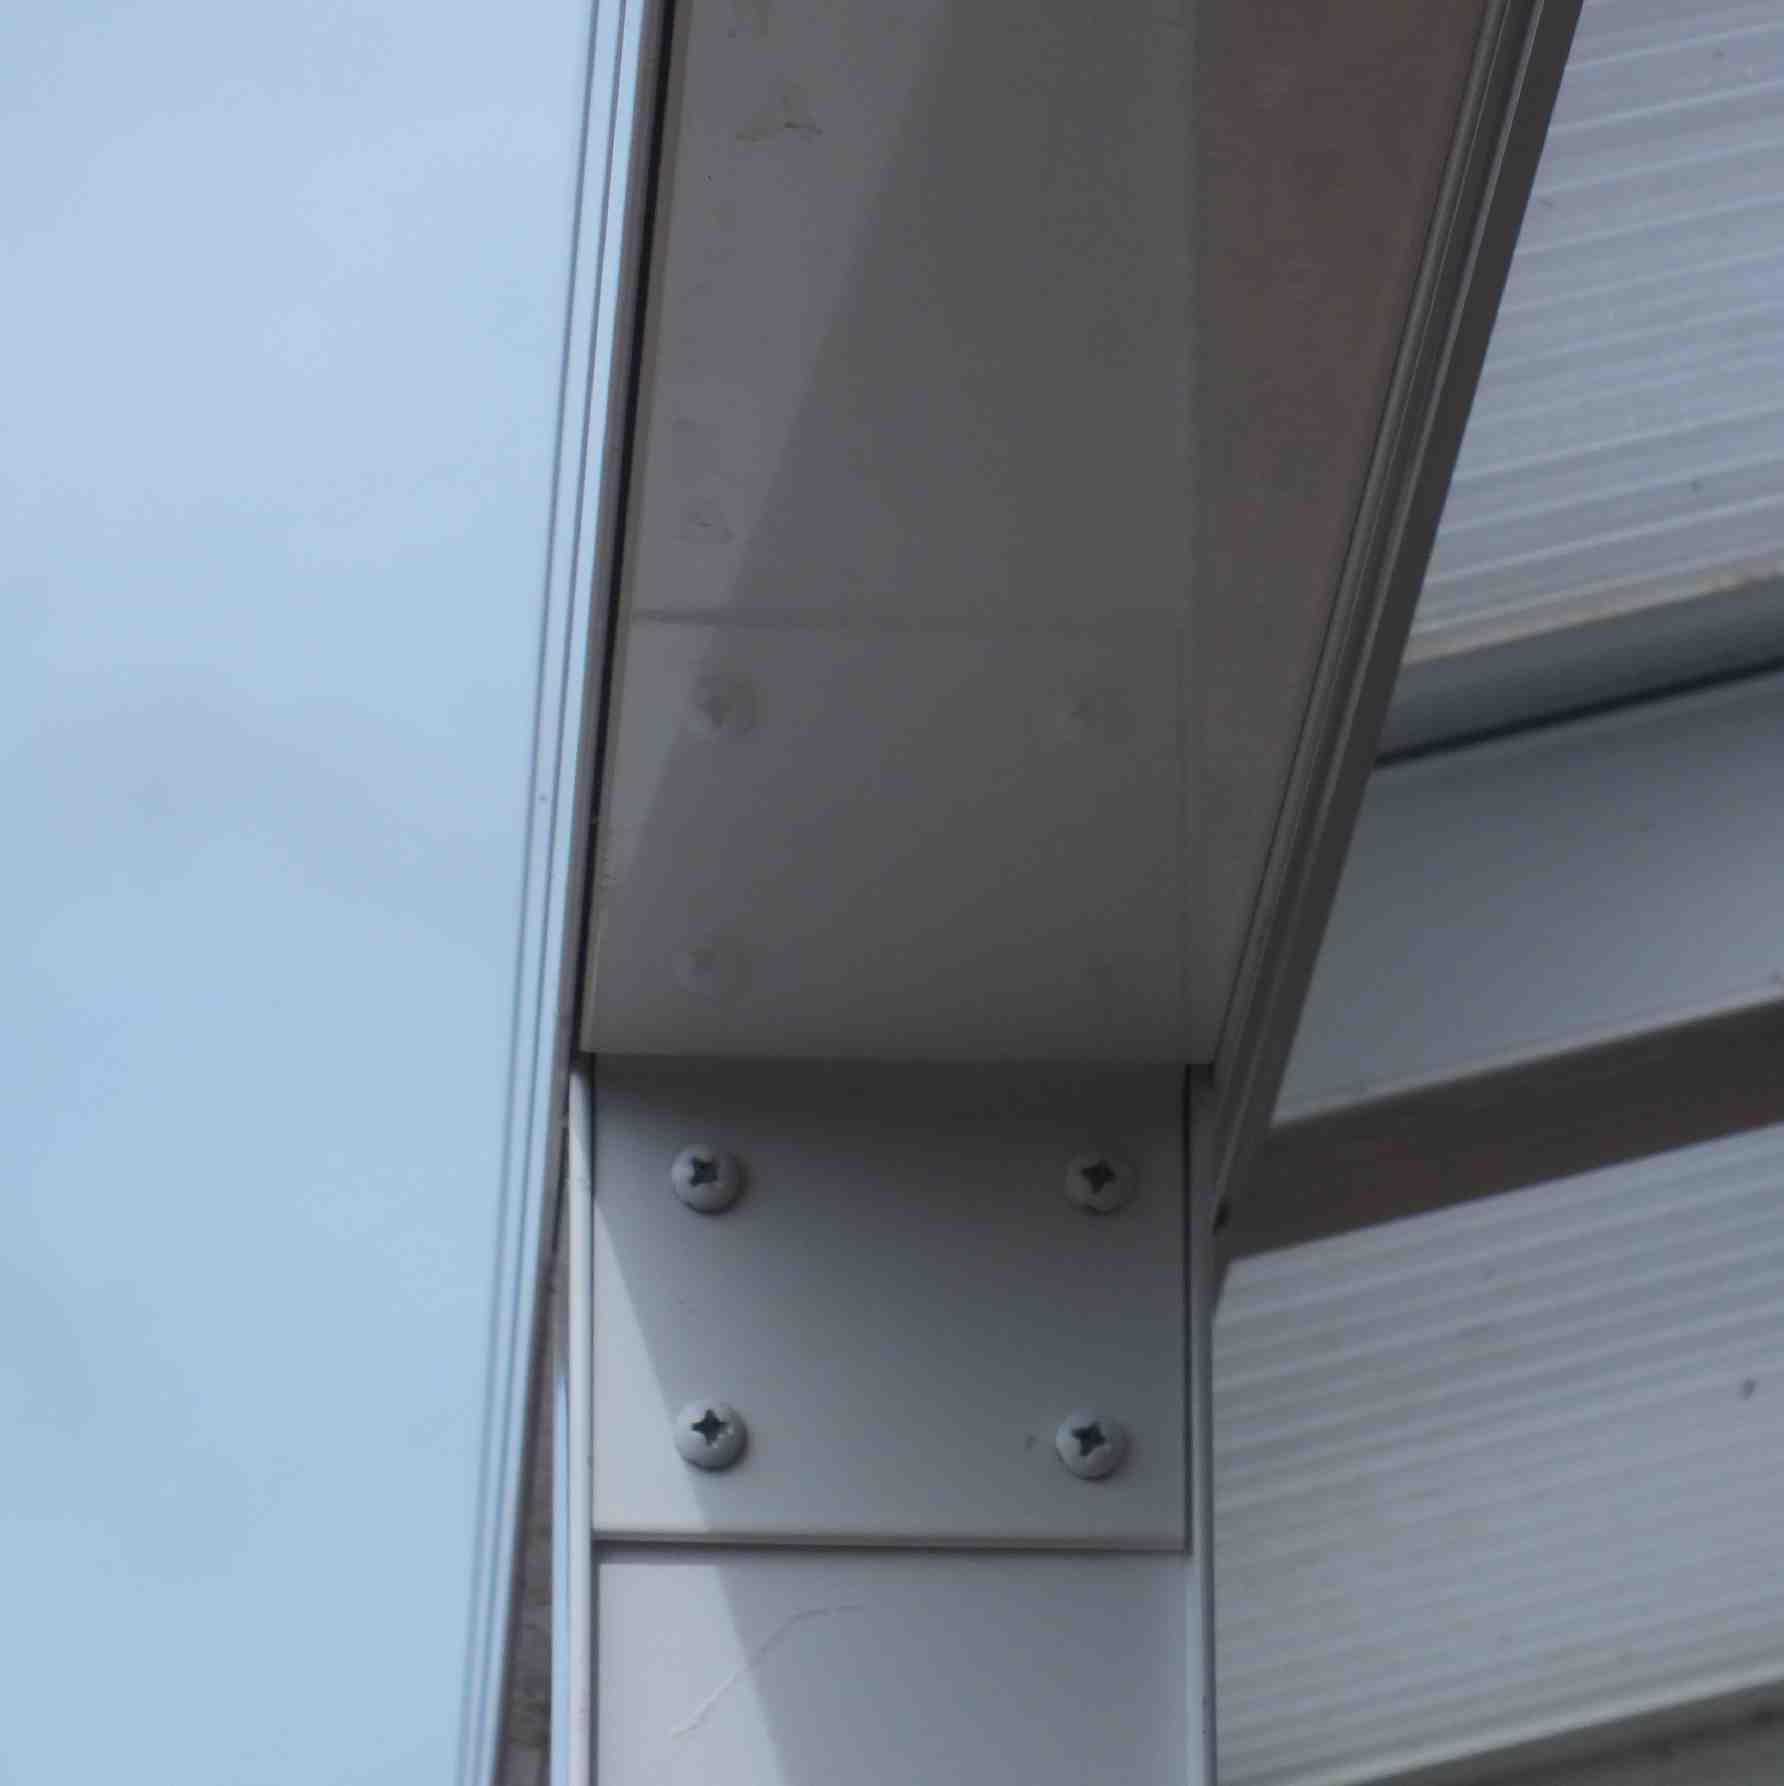 Affordable Omega Verandah with 16mm Polycarbonate Glazing - 9.5m (W) x 2.5m (P), (5) Supporting Posts